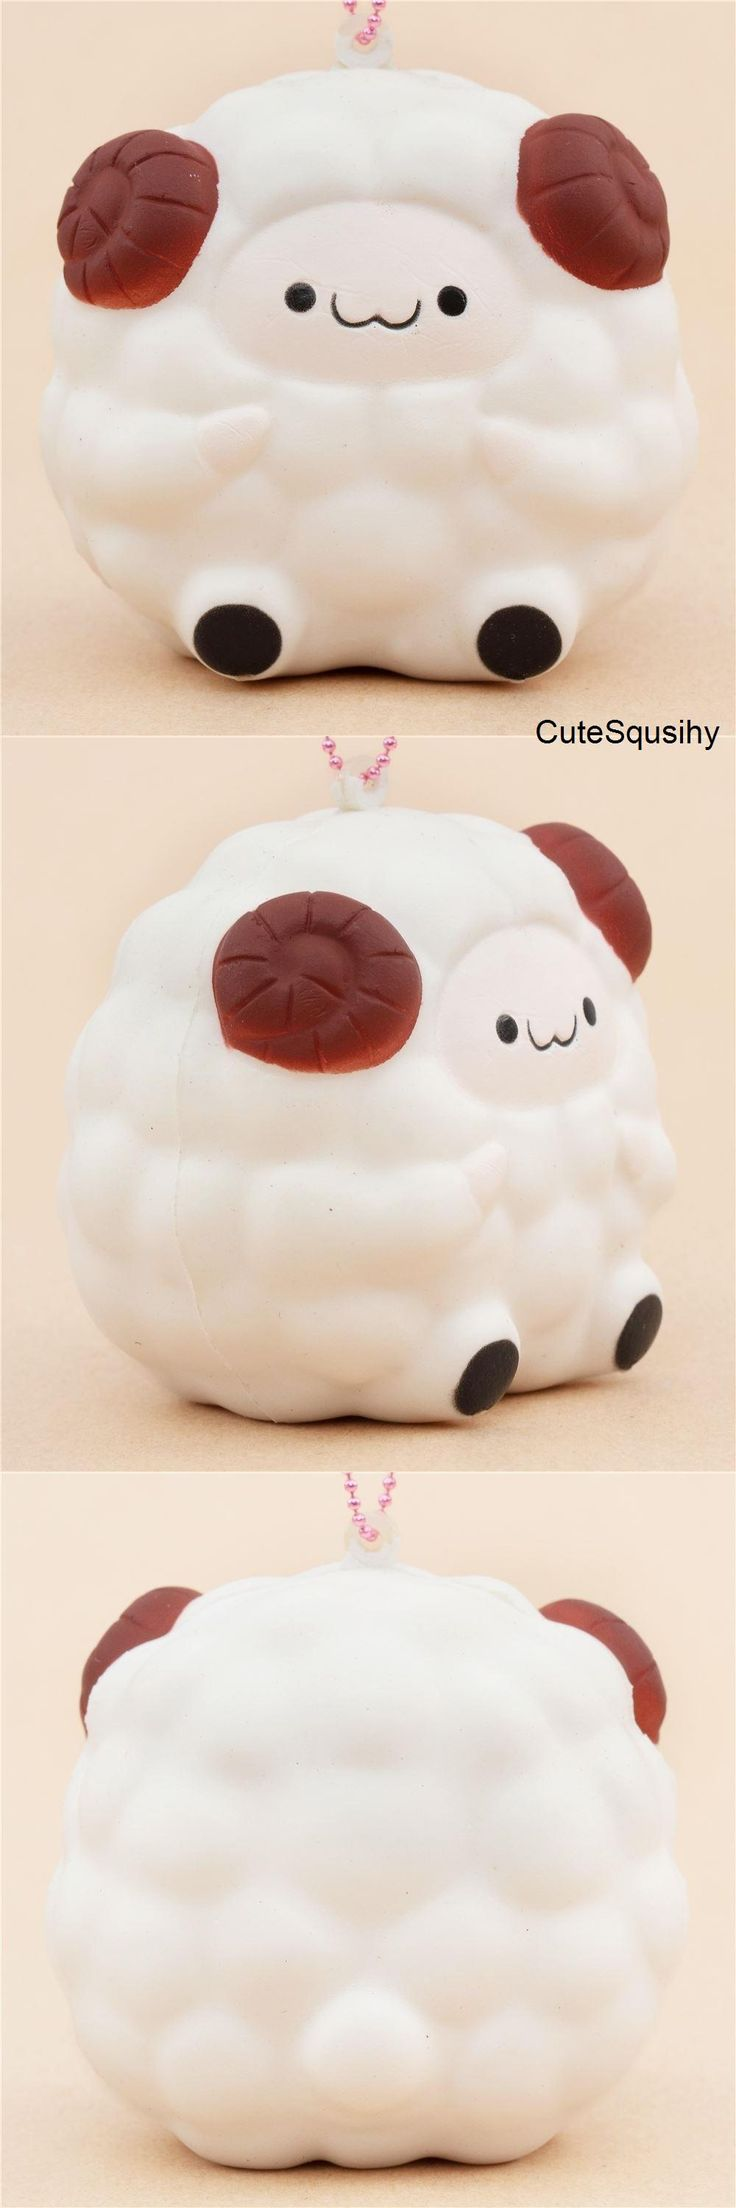 May Kawaii Squishy And Slime : 120 best Squishies images on Pinterest Slime, Squishy kawaii and Stress ball